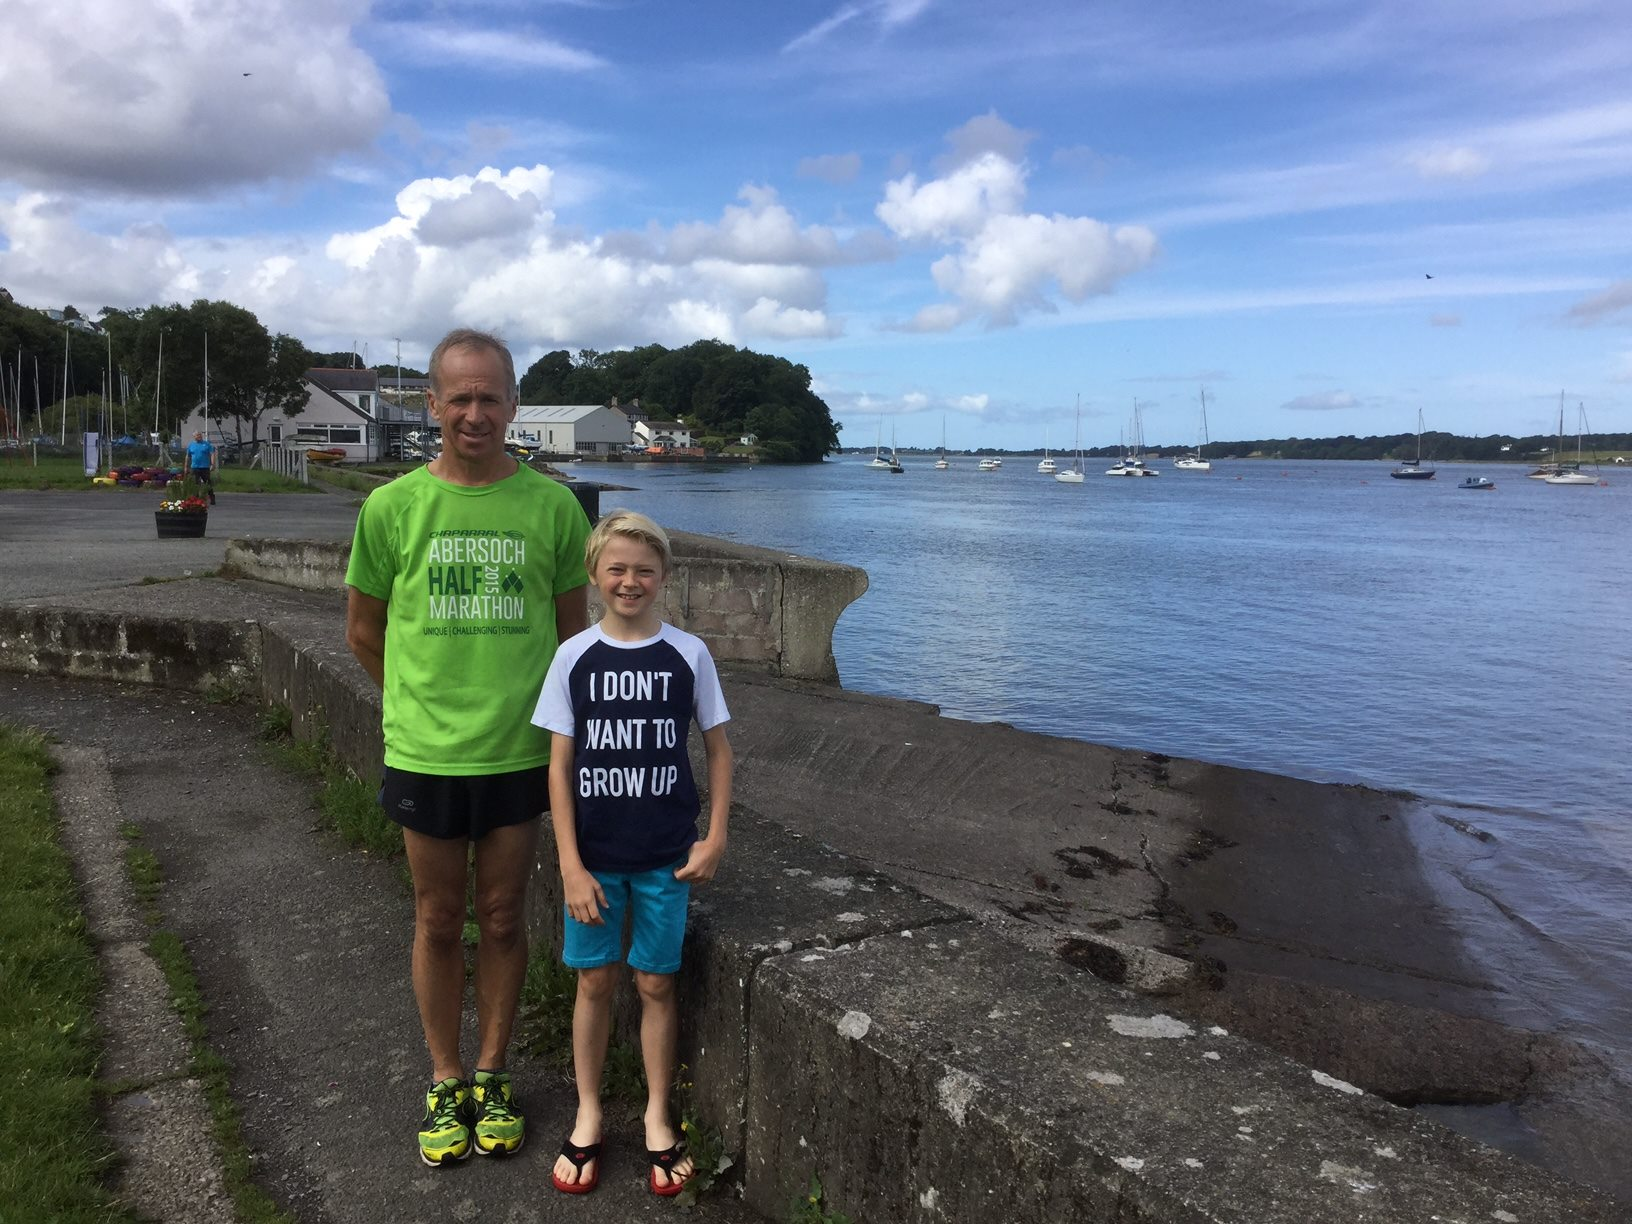 Tony Taylor and Son at Conwy parkrun